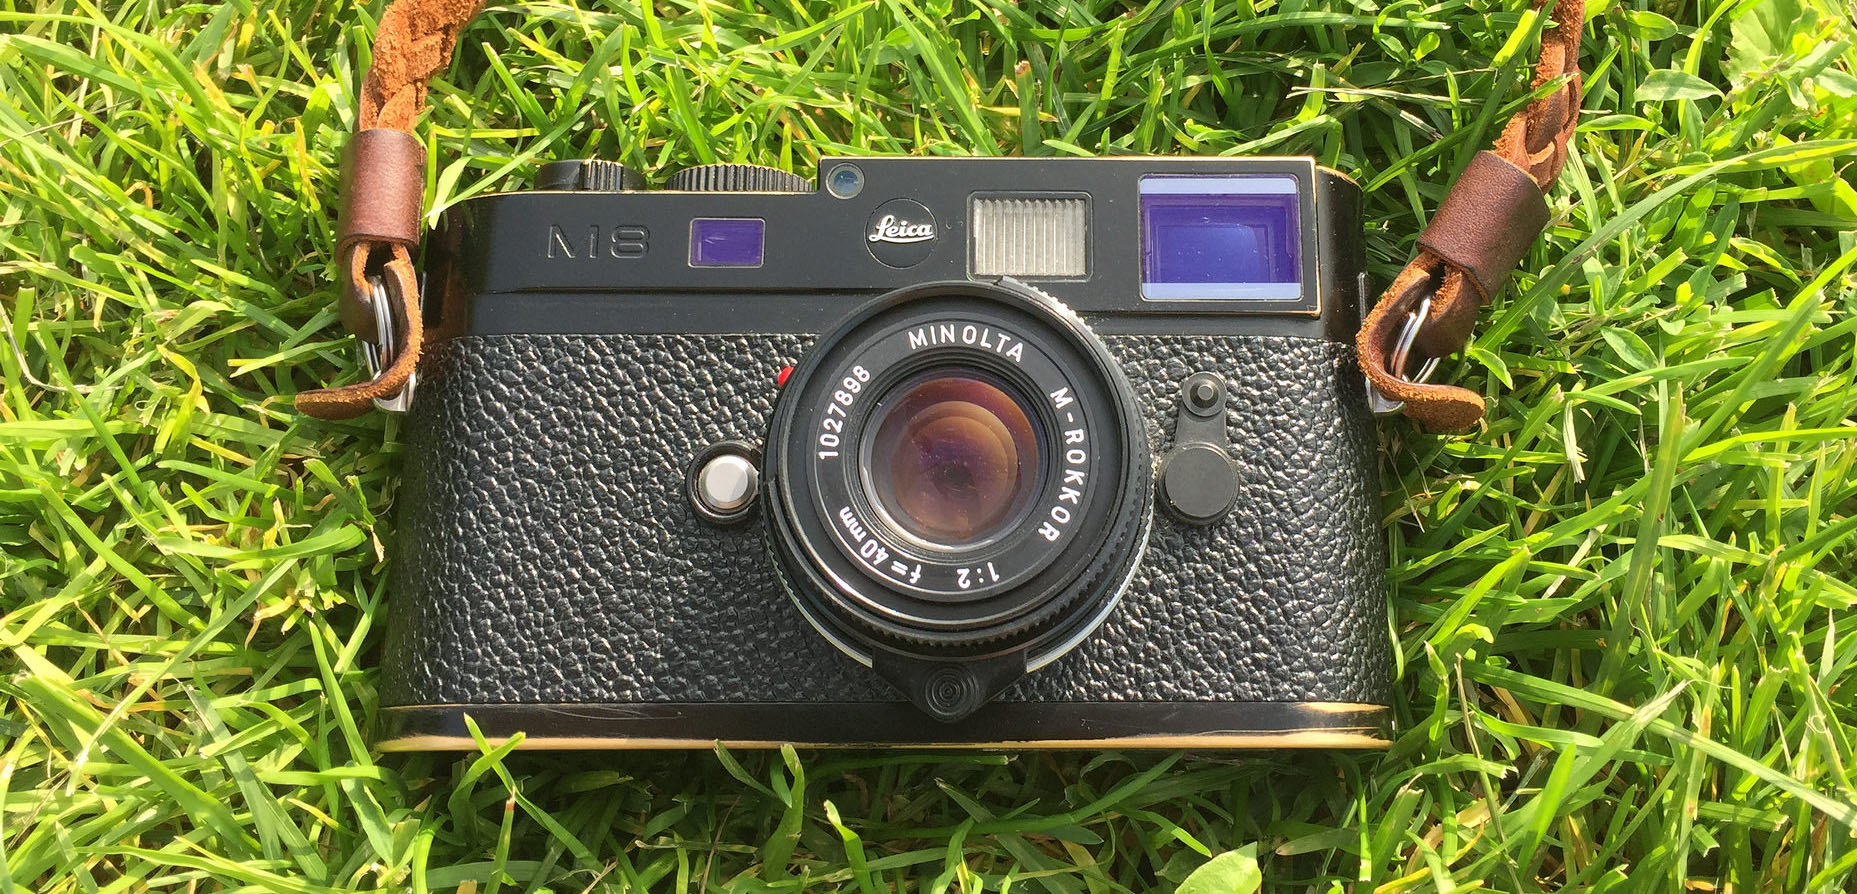 Leica M8.2 - or - Why I Bought a 10 Year Old Digital Camera in 2017